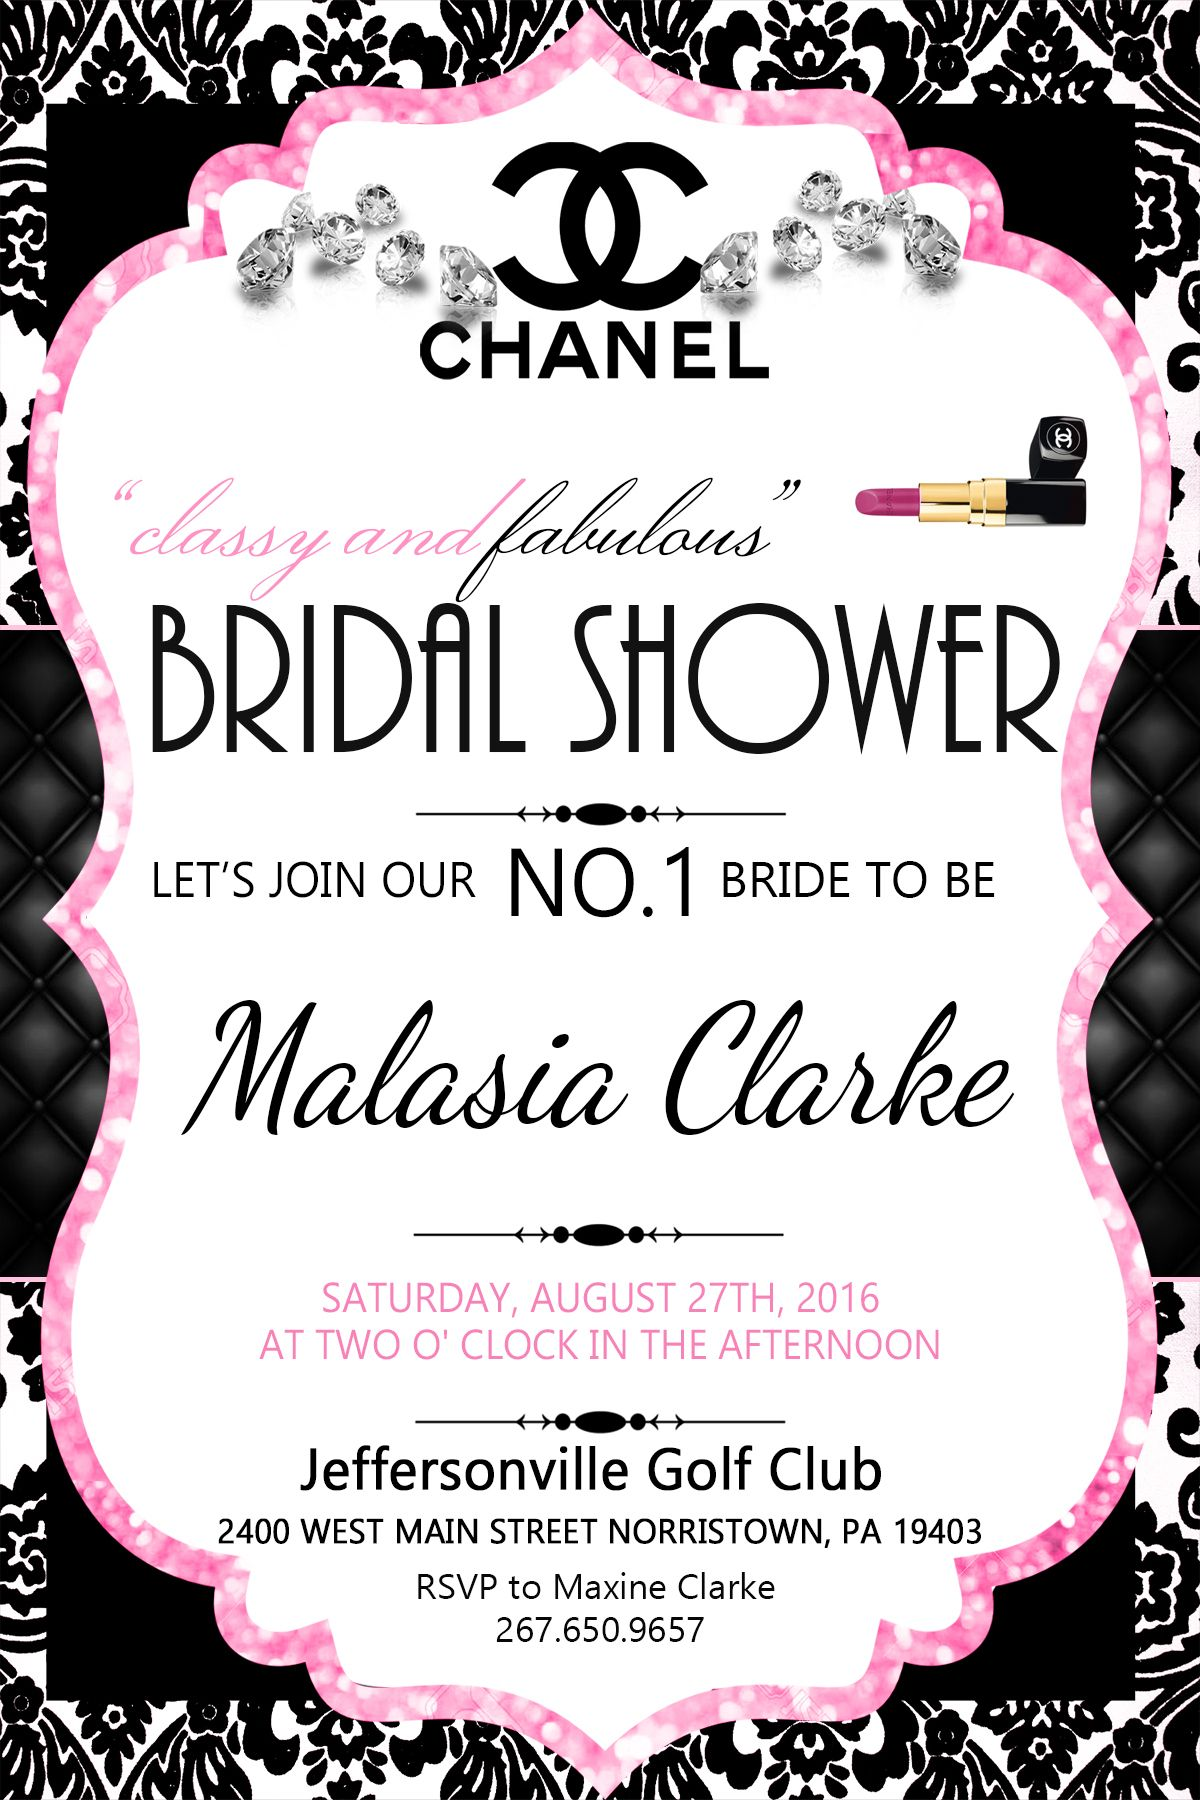 Chanel Inspired Bridal Shower Invitation Pink Black White Chanel